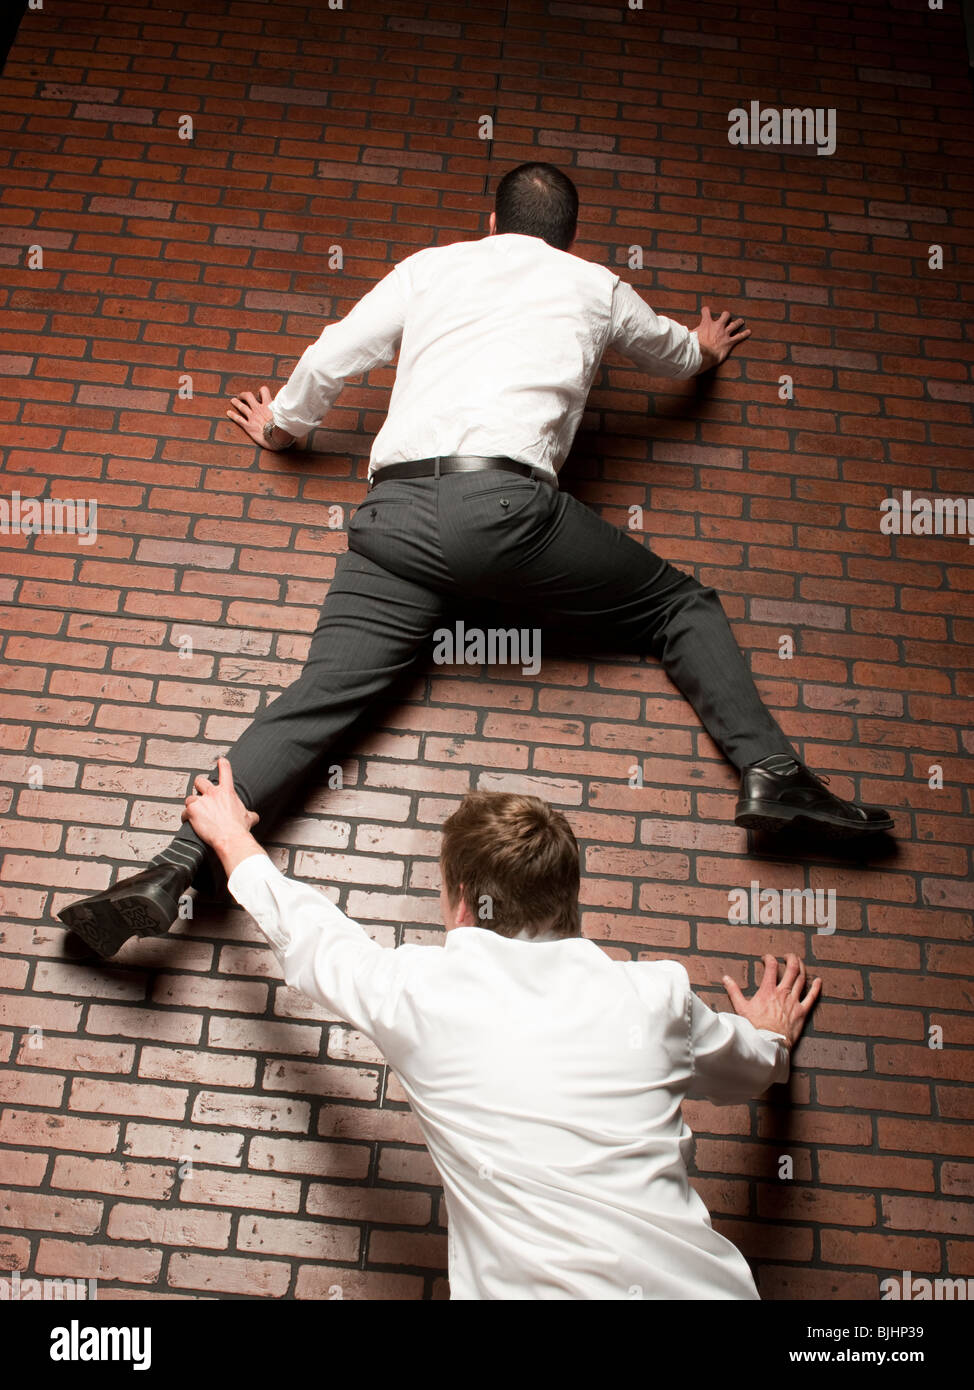 man climbing up a brick wall while another man grabs on to his leg - Stock Image